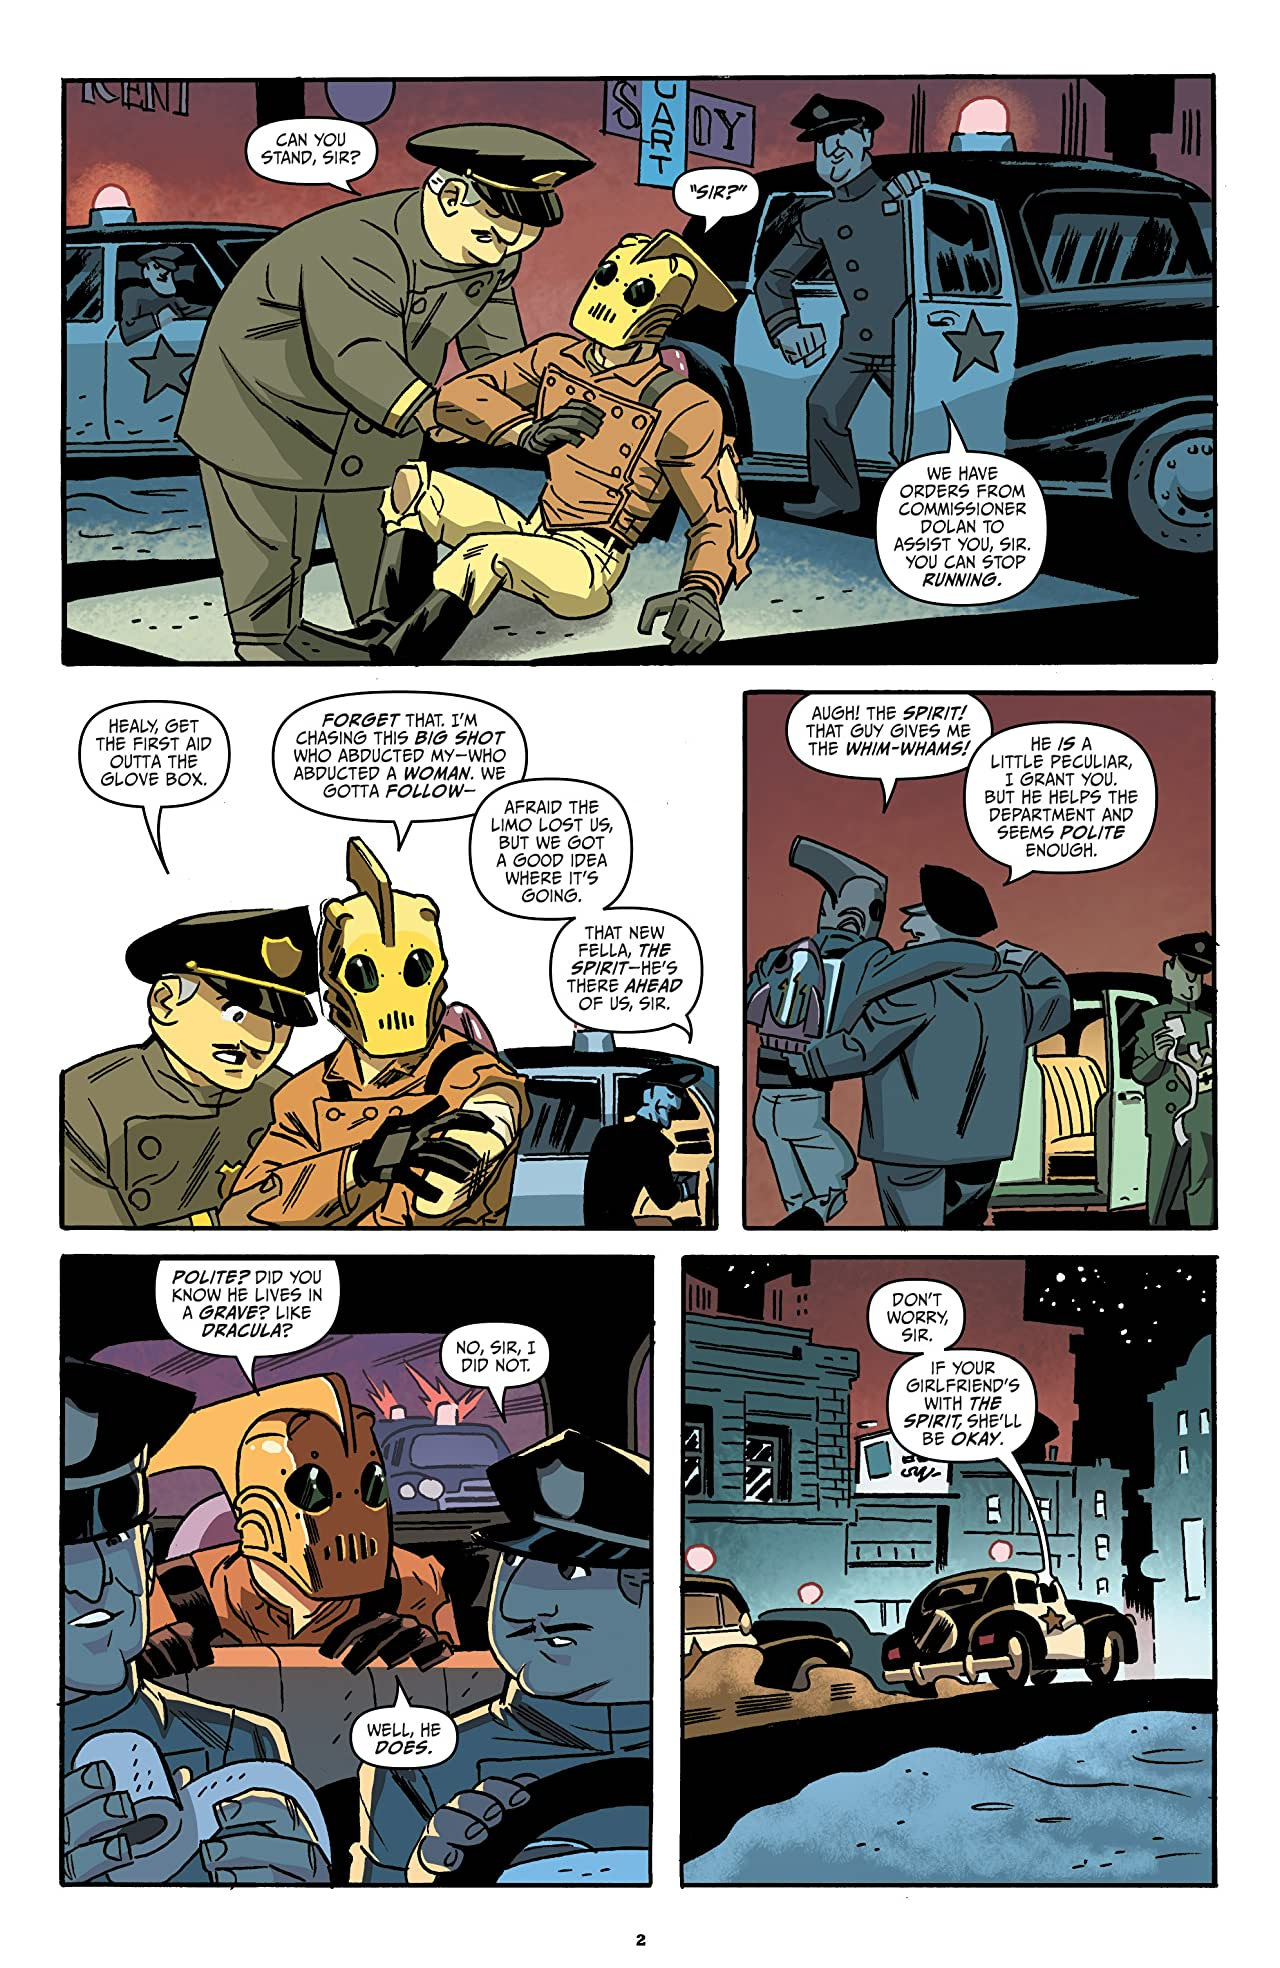 Rocketeer/The Spirit: Pulp Friction! #4 (of 4)